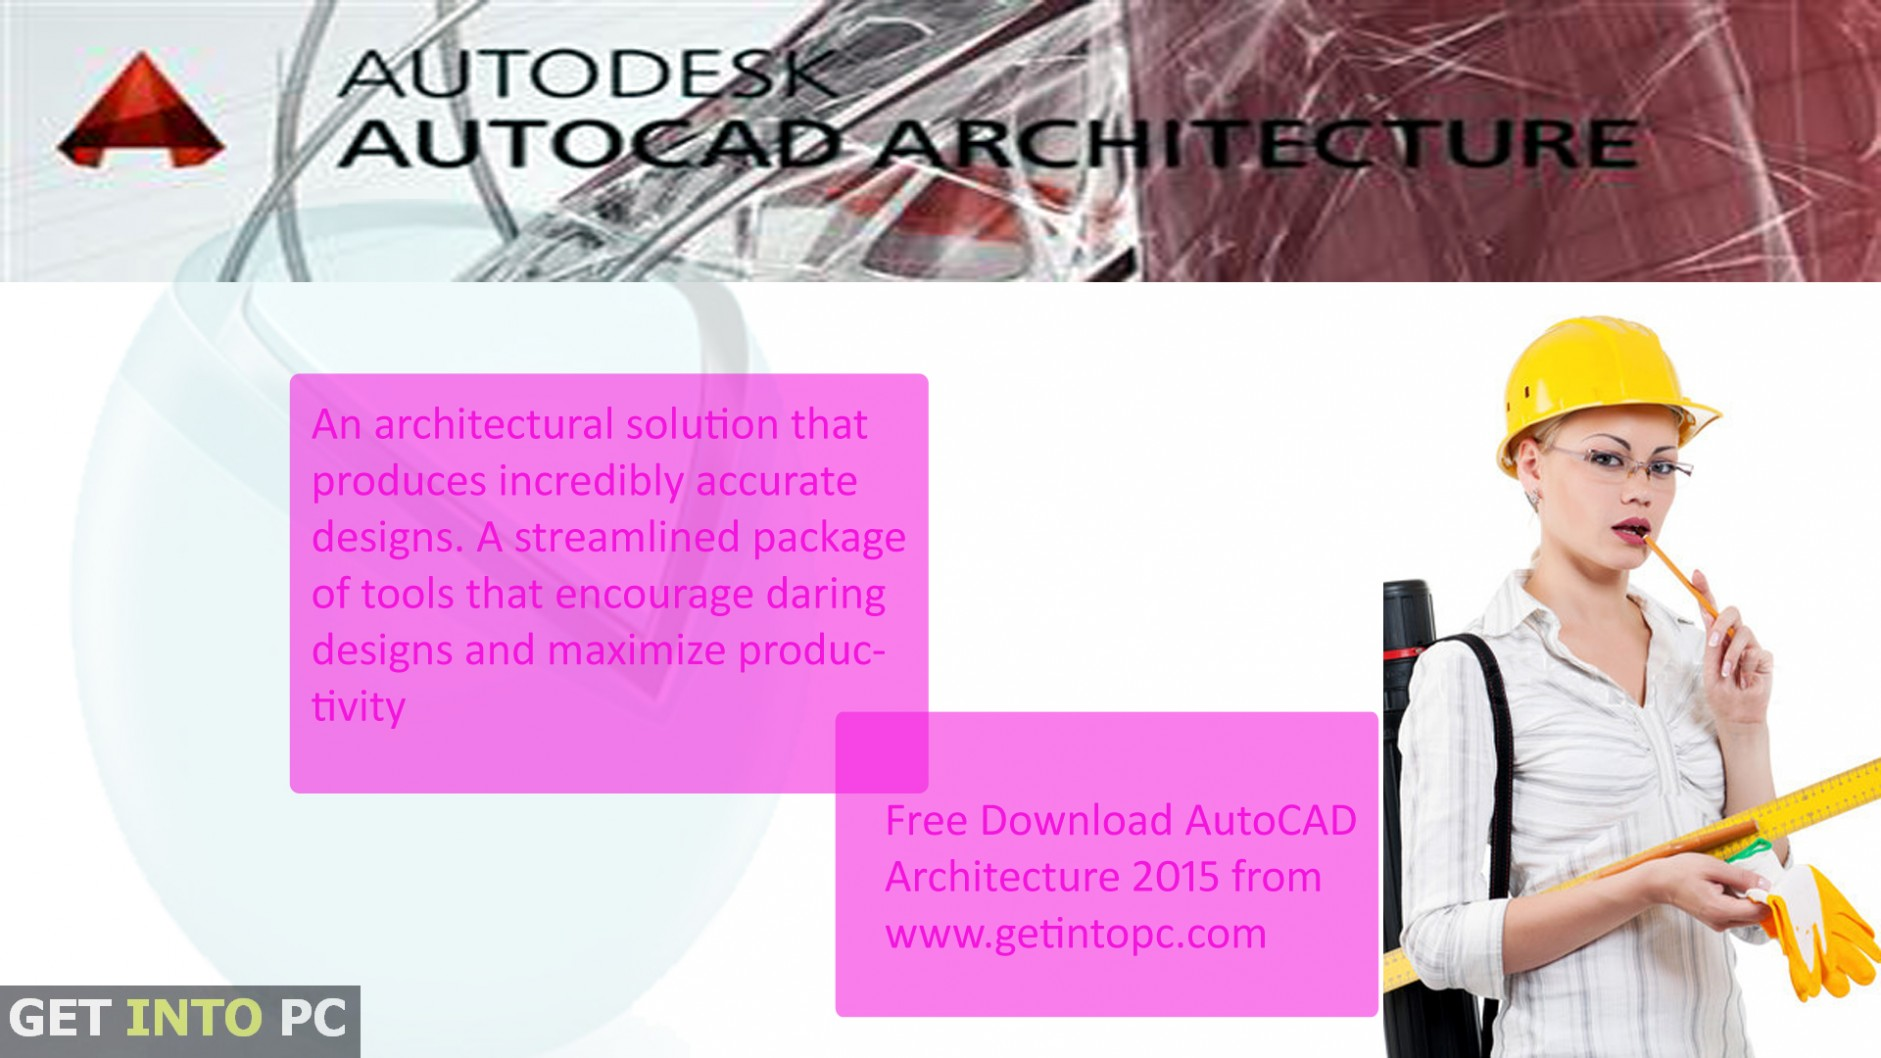 AutoCAD Architecture 2015 Free Download